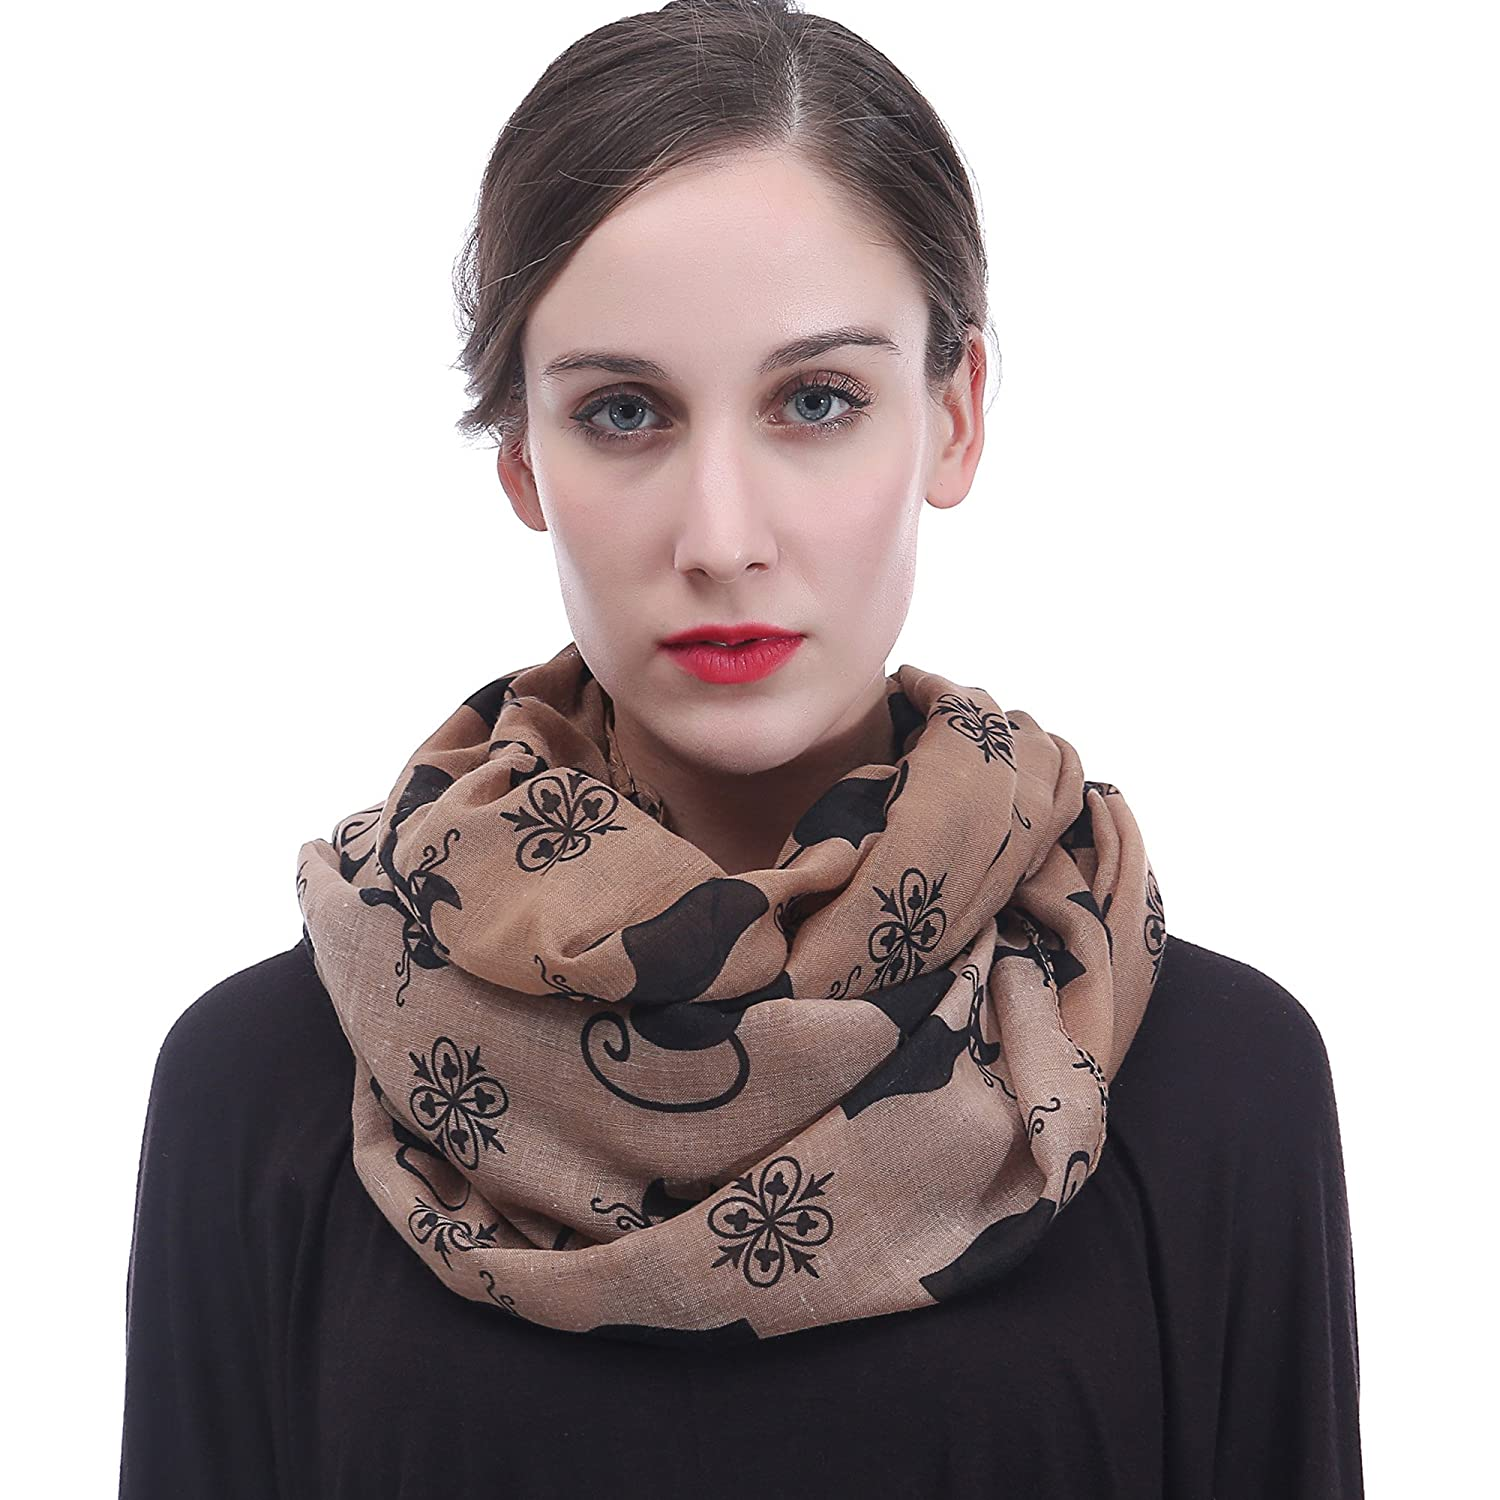 Lina & Lily Cat Kitten Print Women's Infinity Loop Scarf (Black+Pink)